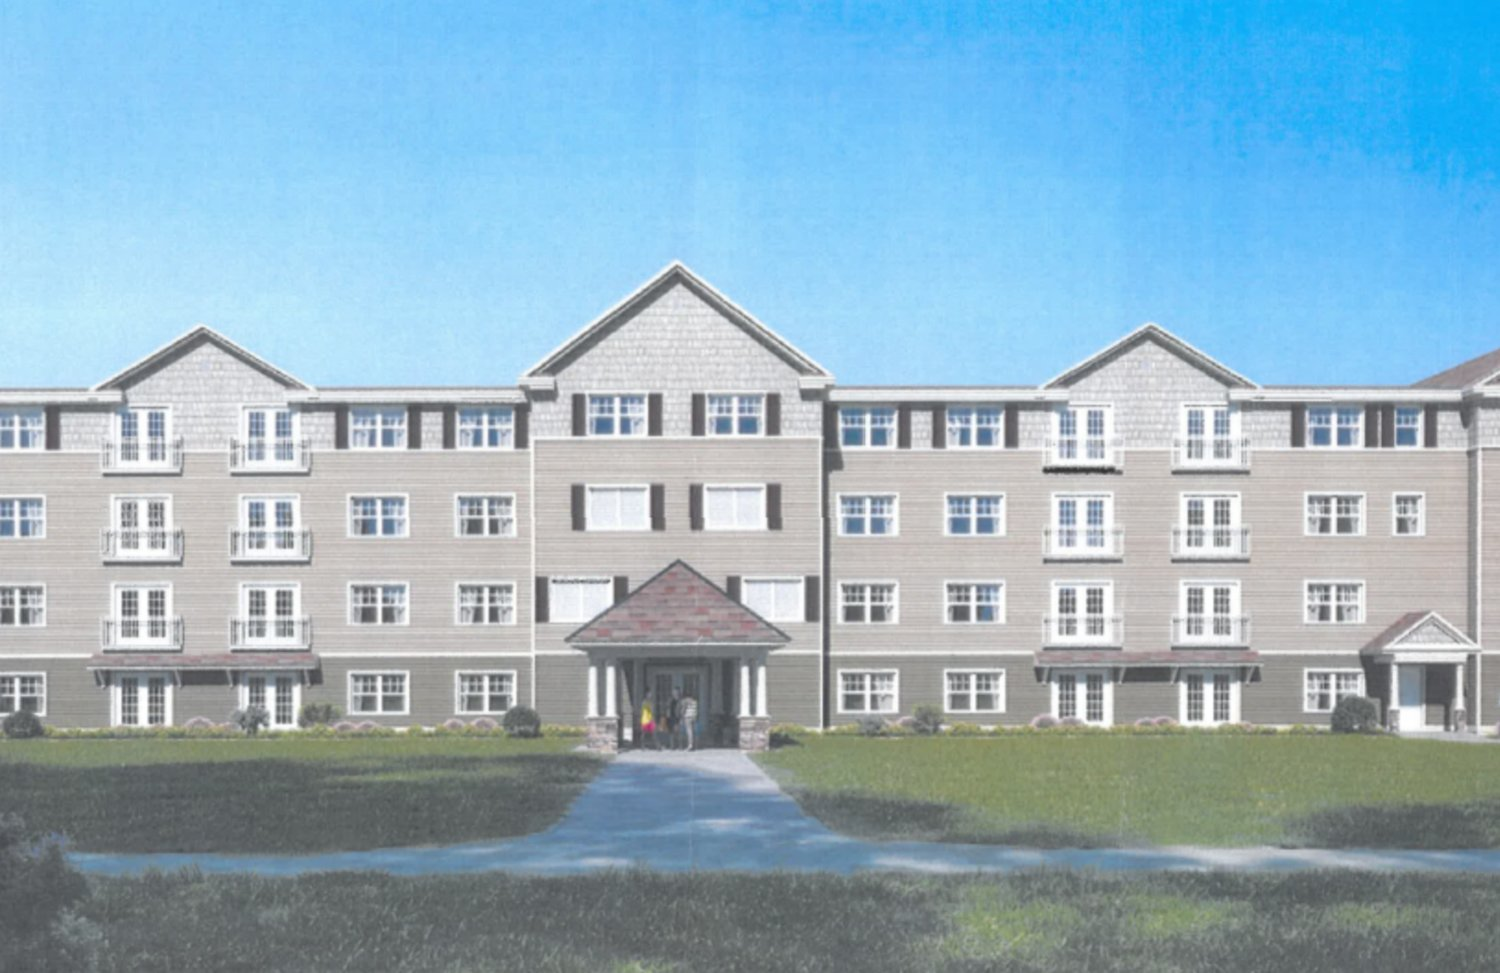 This artistic rendering shows one of two 54-unit apartment buildings that would be built on Kinnicutt Avenue, just south of Frerichs Farm.